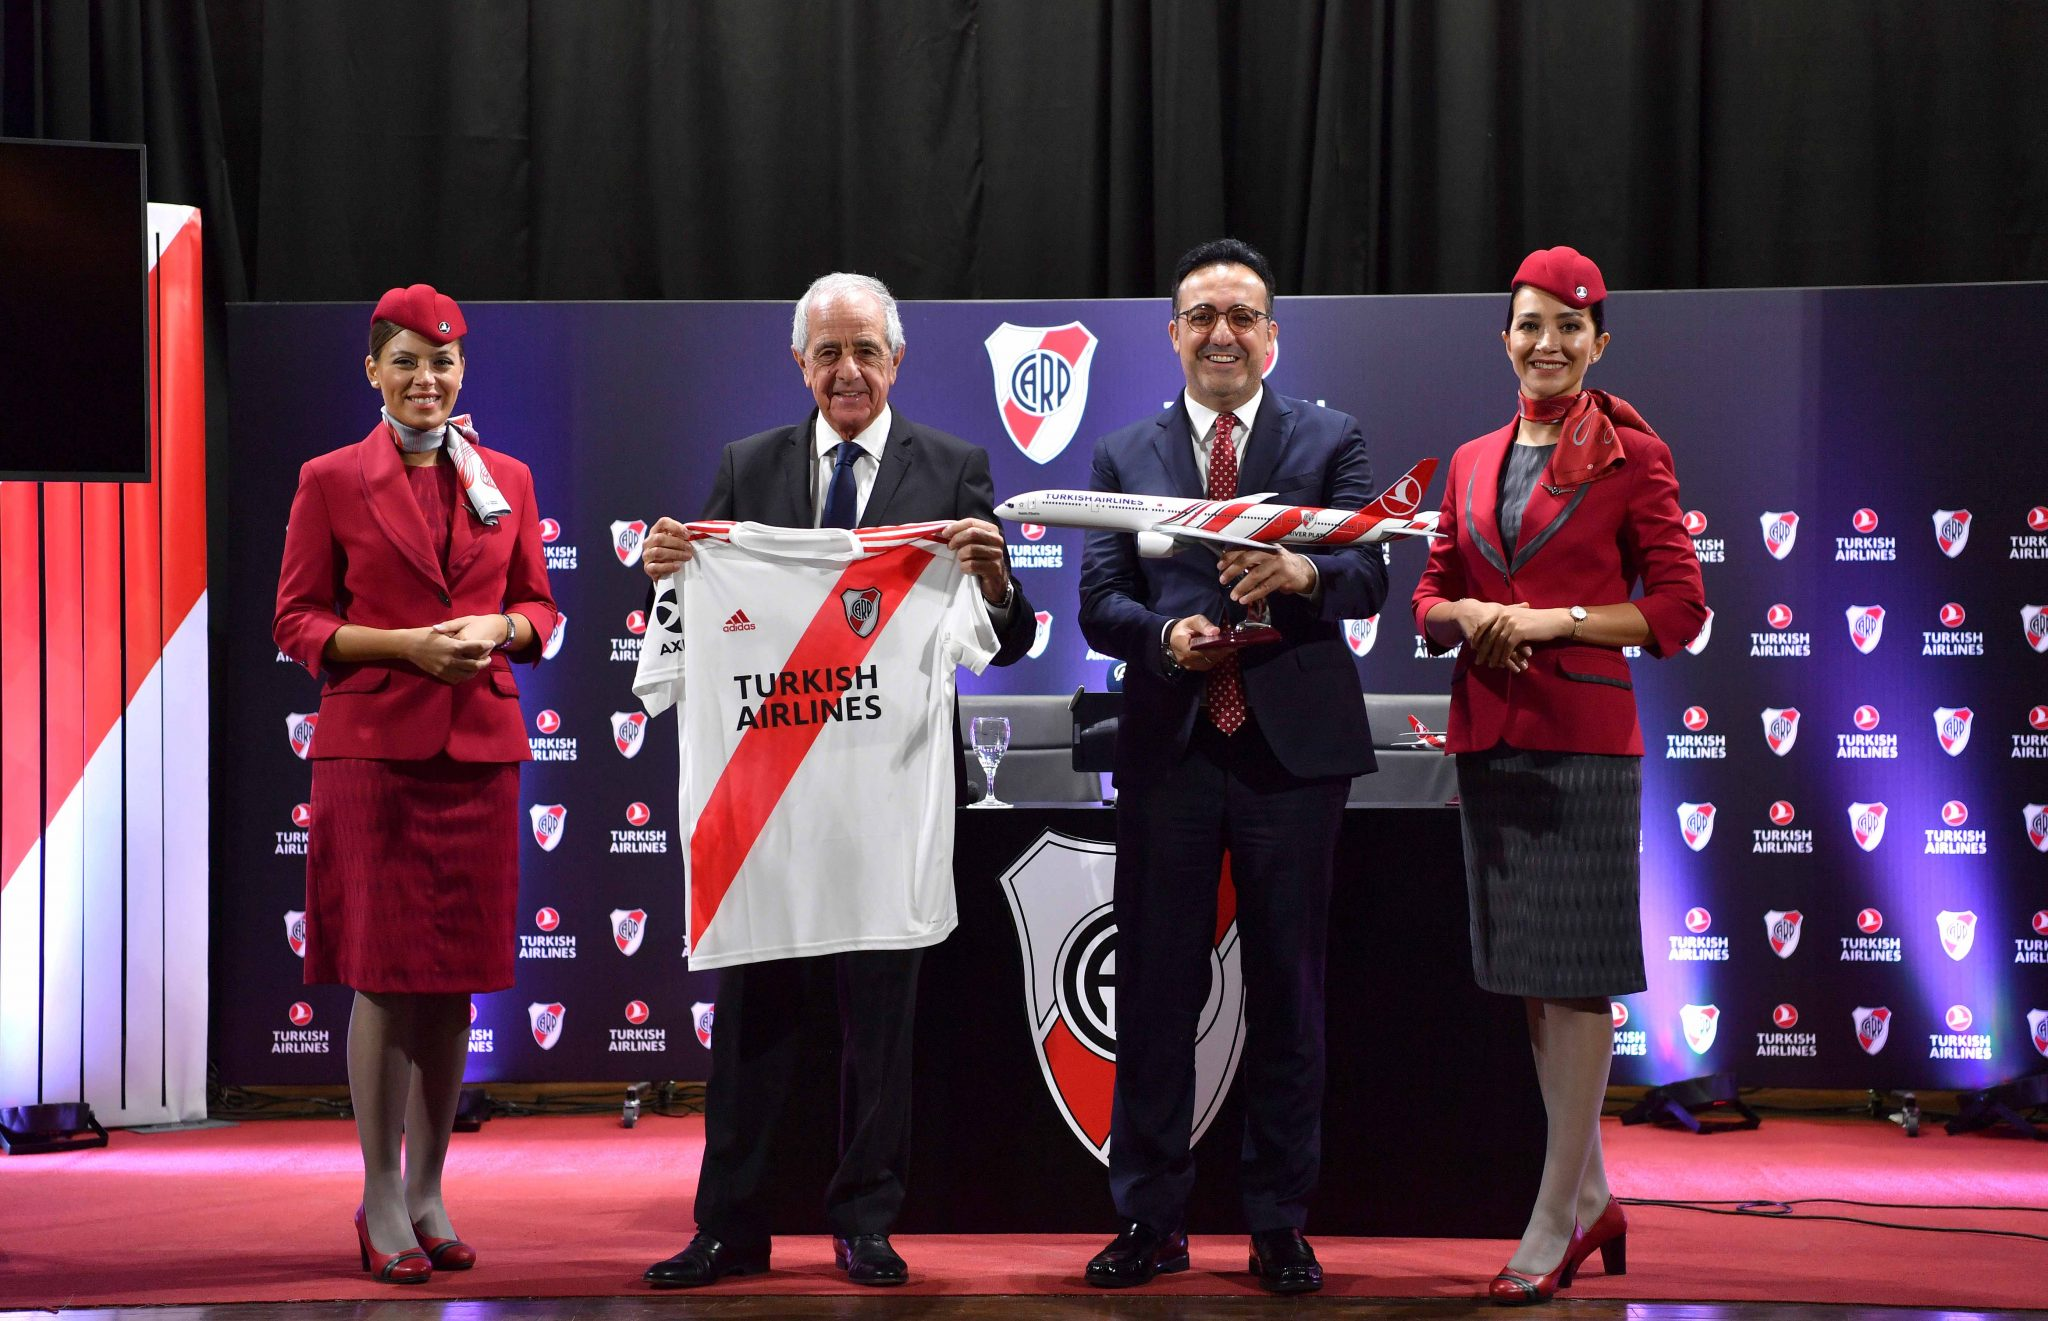 Turkish Airlines y su primer Superclásico en la camiseta de River Plate